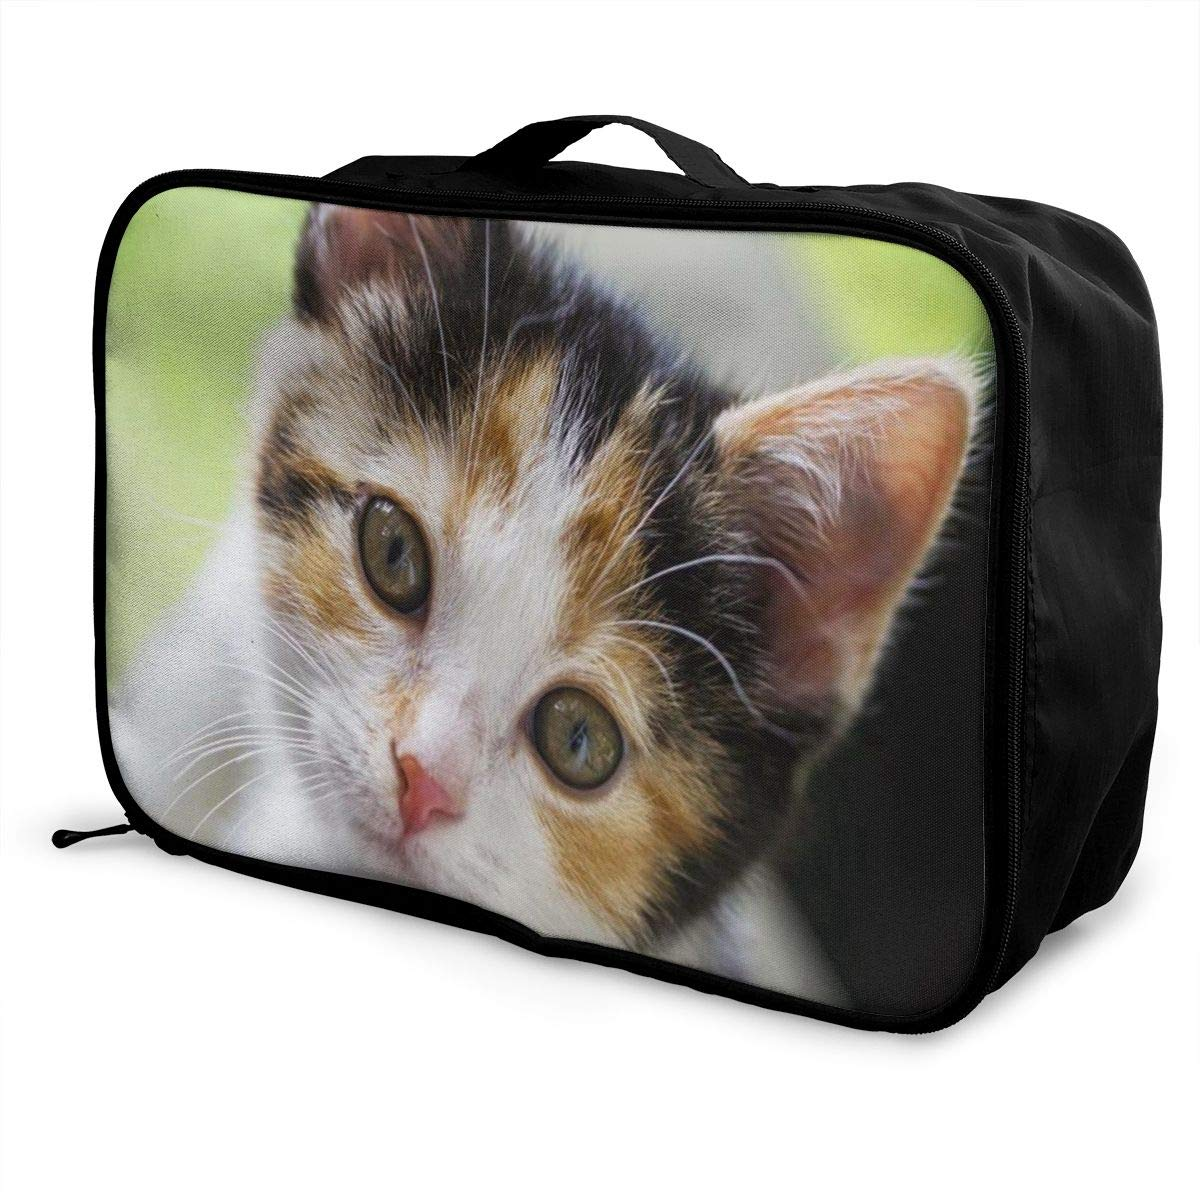 Lightweight Large Capacity Portable Luggage Bag Cute Cat Travel Waterproof Foldable Storage Carry Tote Bag